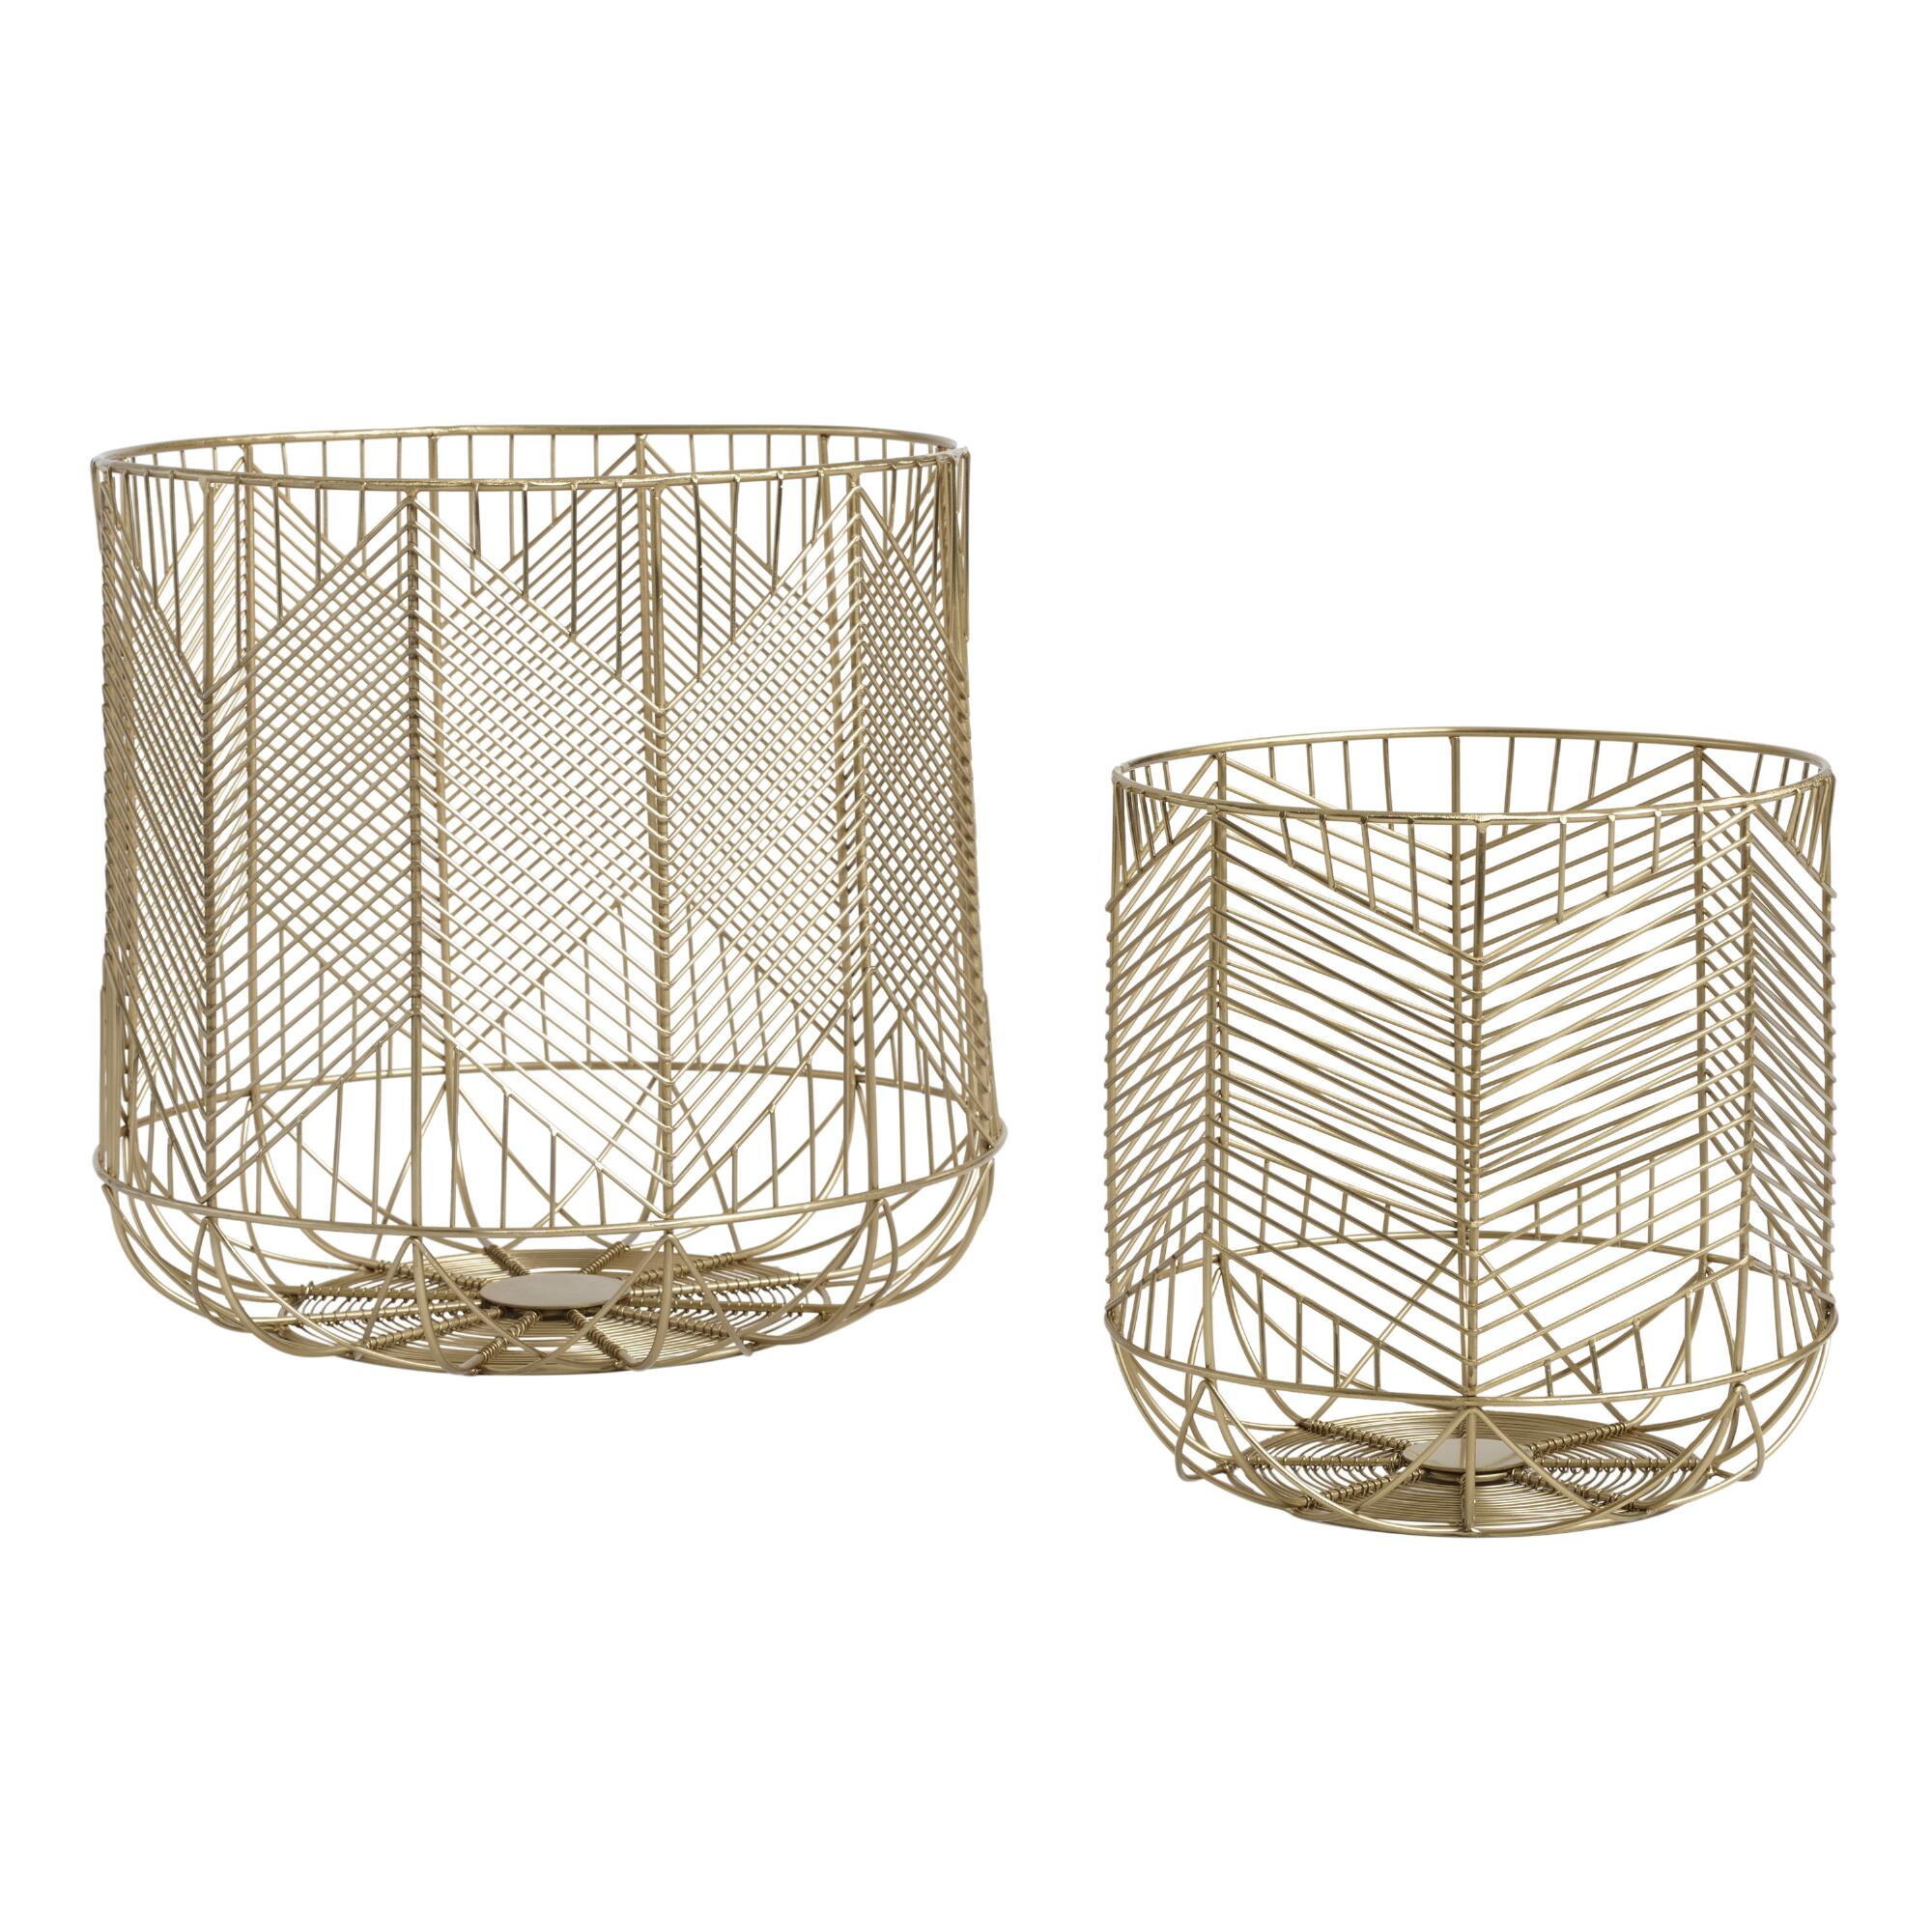 Gold Wire Geometric Reese Baskets - Small by World Market Small